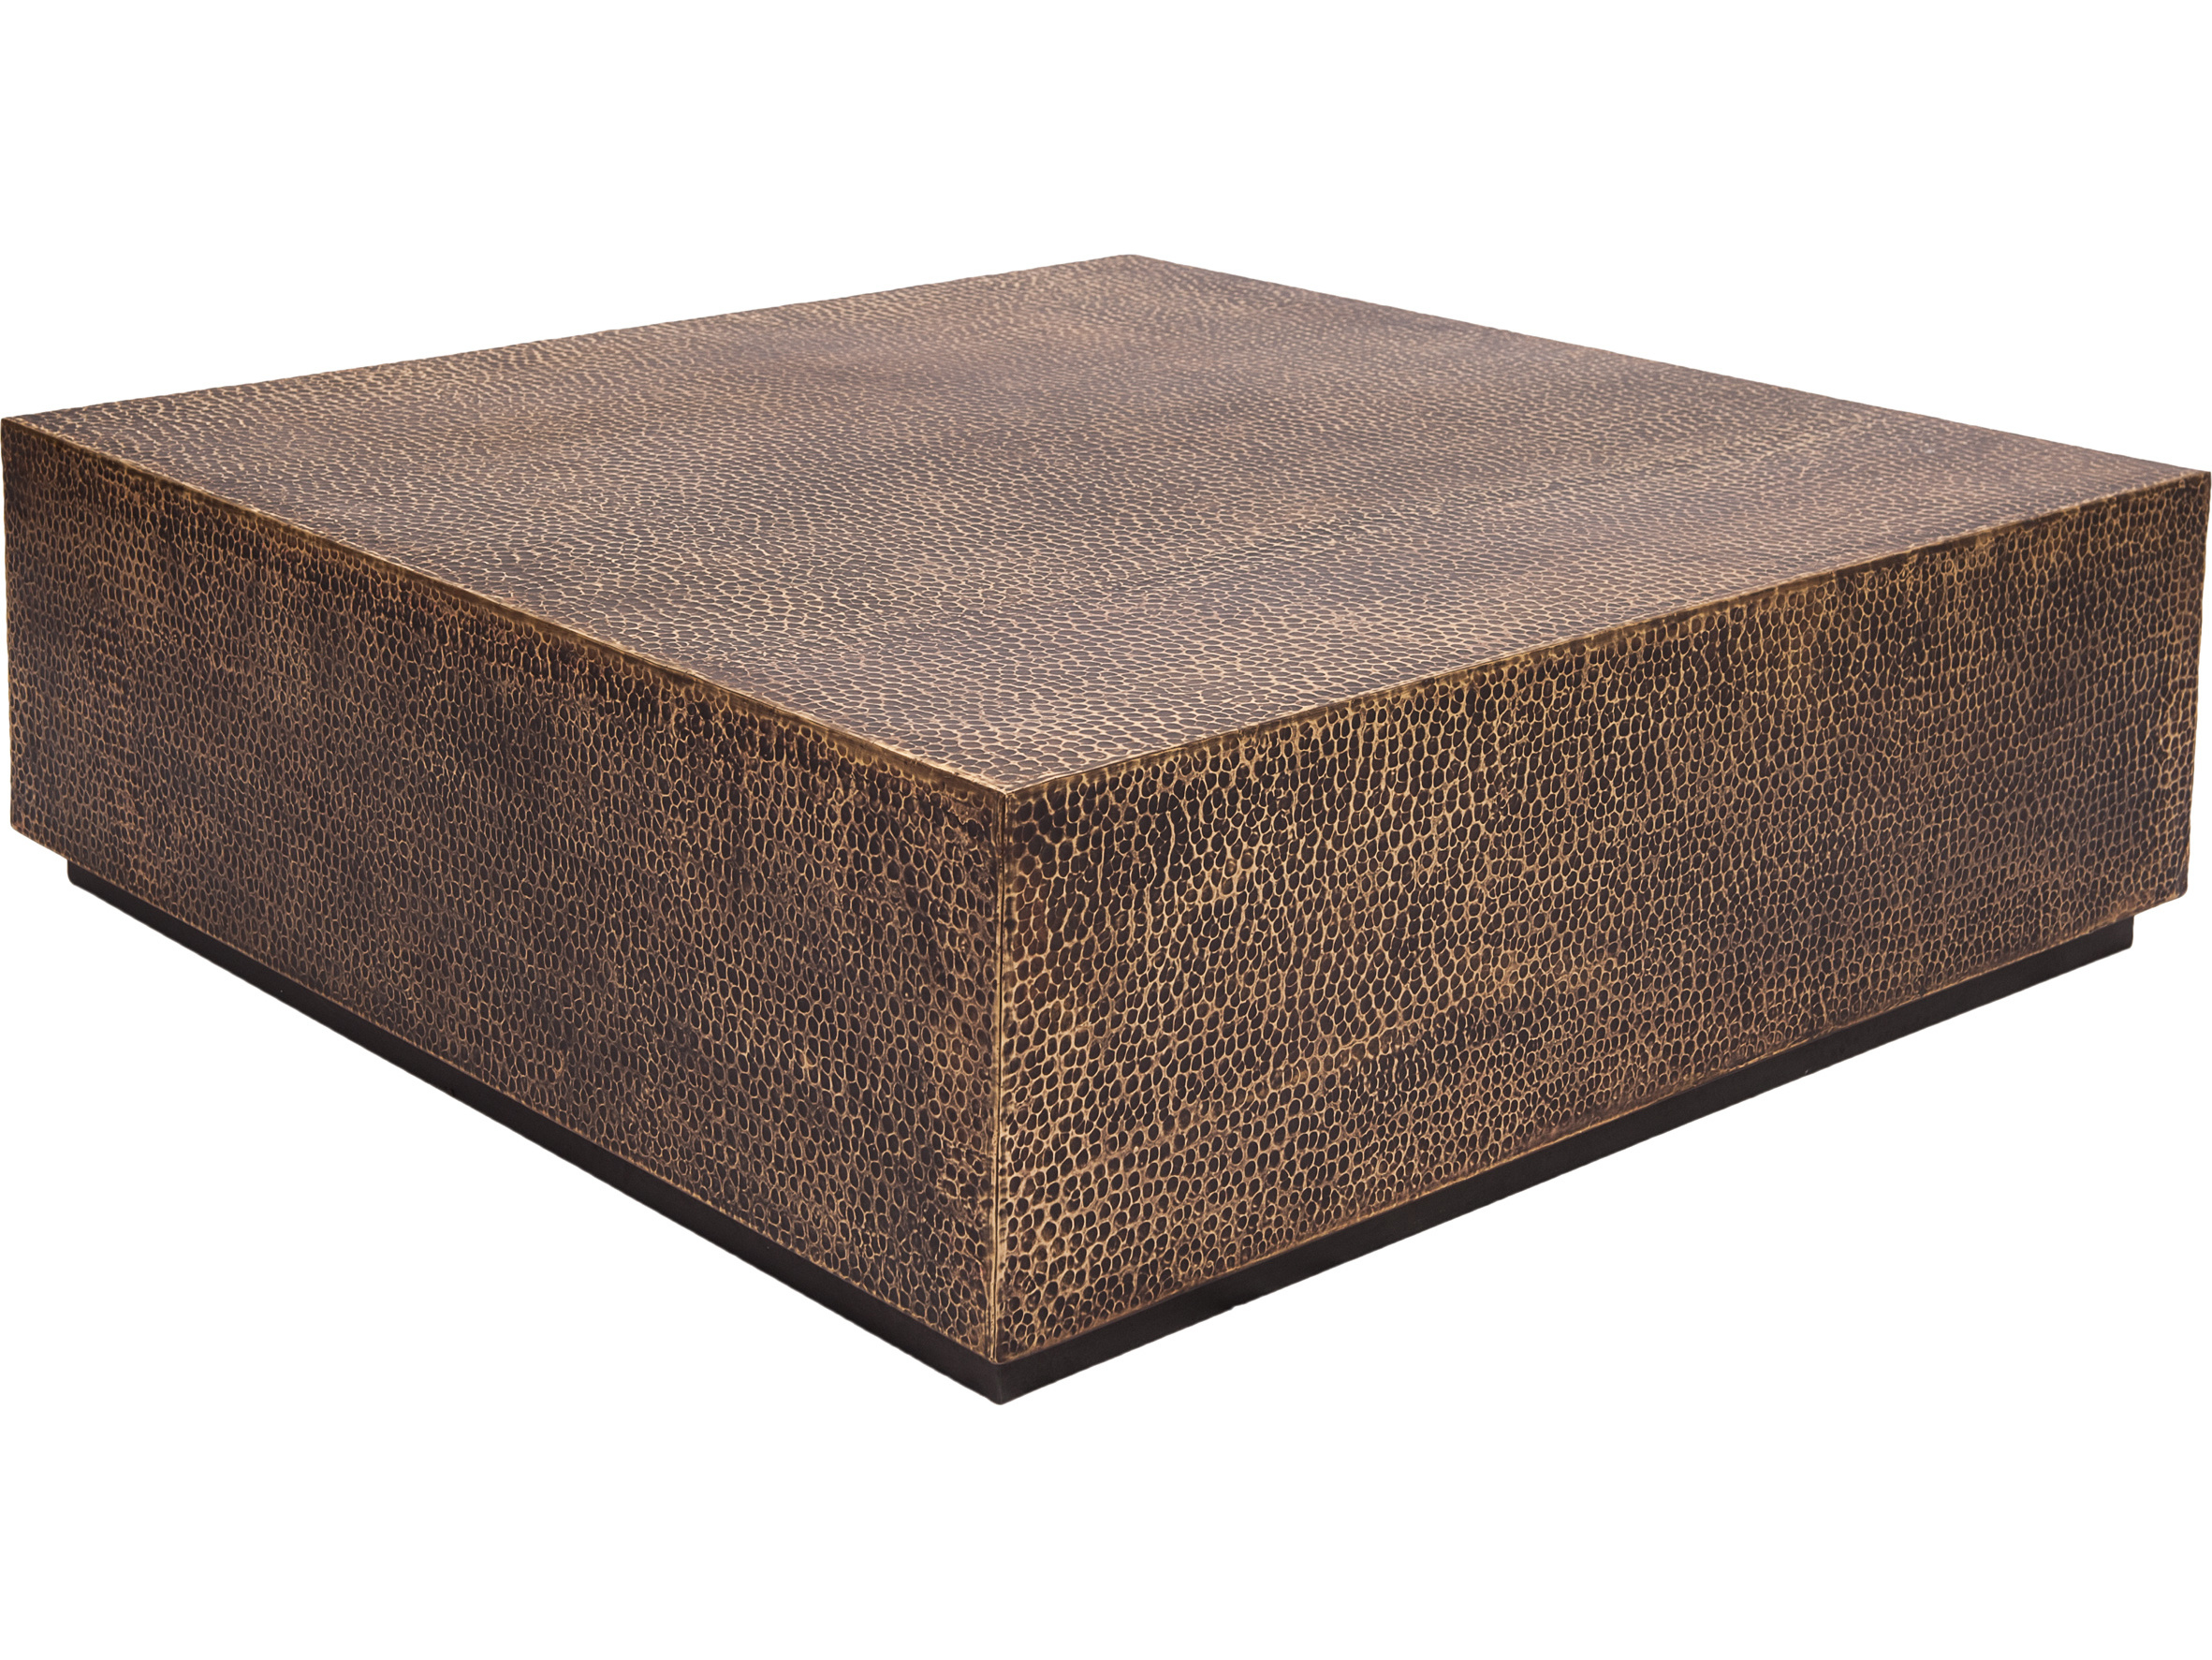 Seasonal Living Ingot Aged Bullion Hand Hammered Copper Molten 40 Square Wide Coffee Table